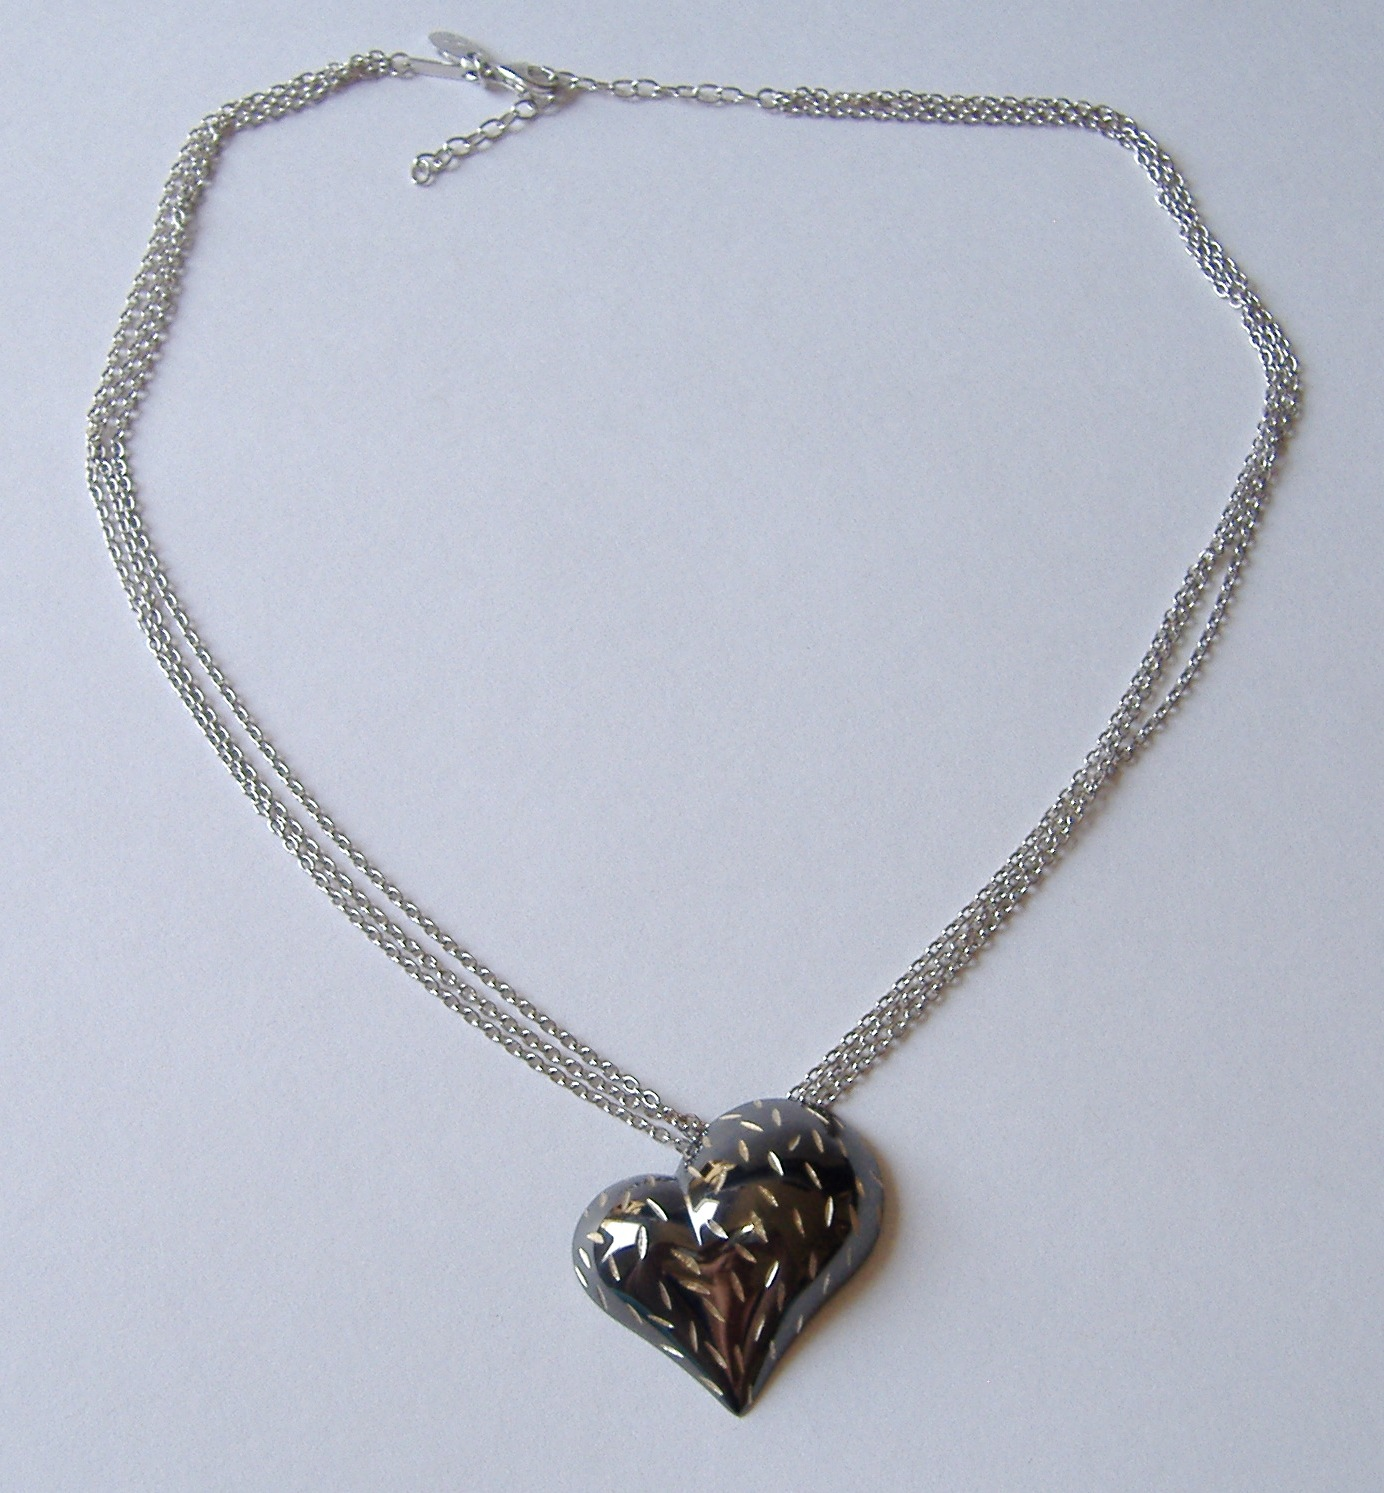 Ruthenium Sculpted Heart Pendant Sterling Silver Chain Necklace Contemporary